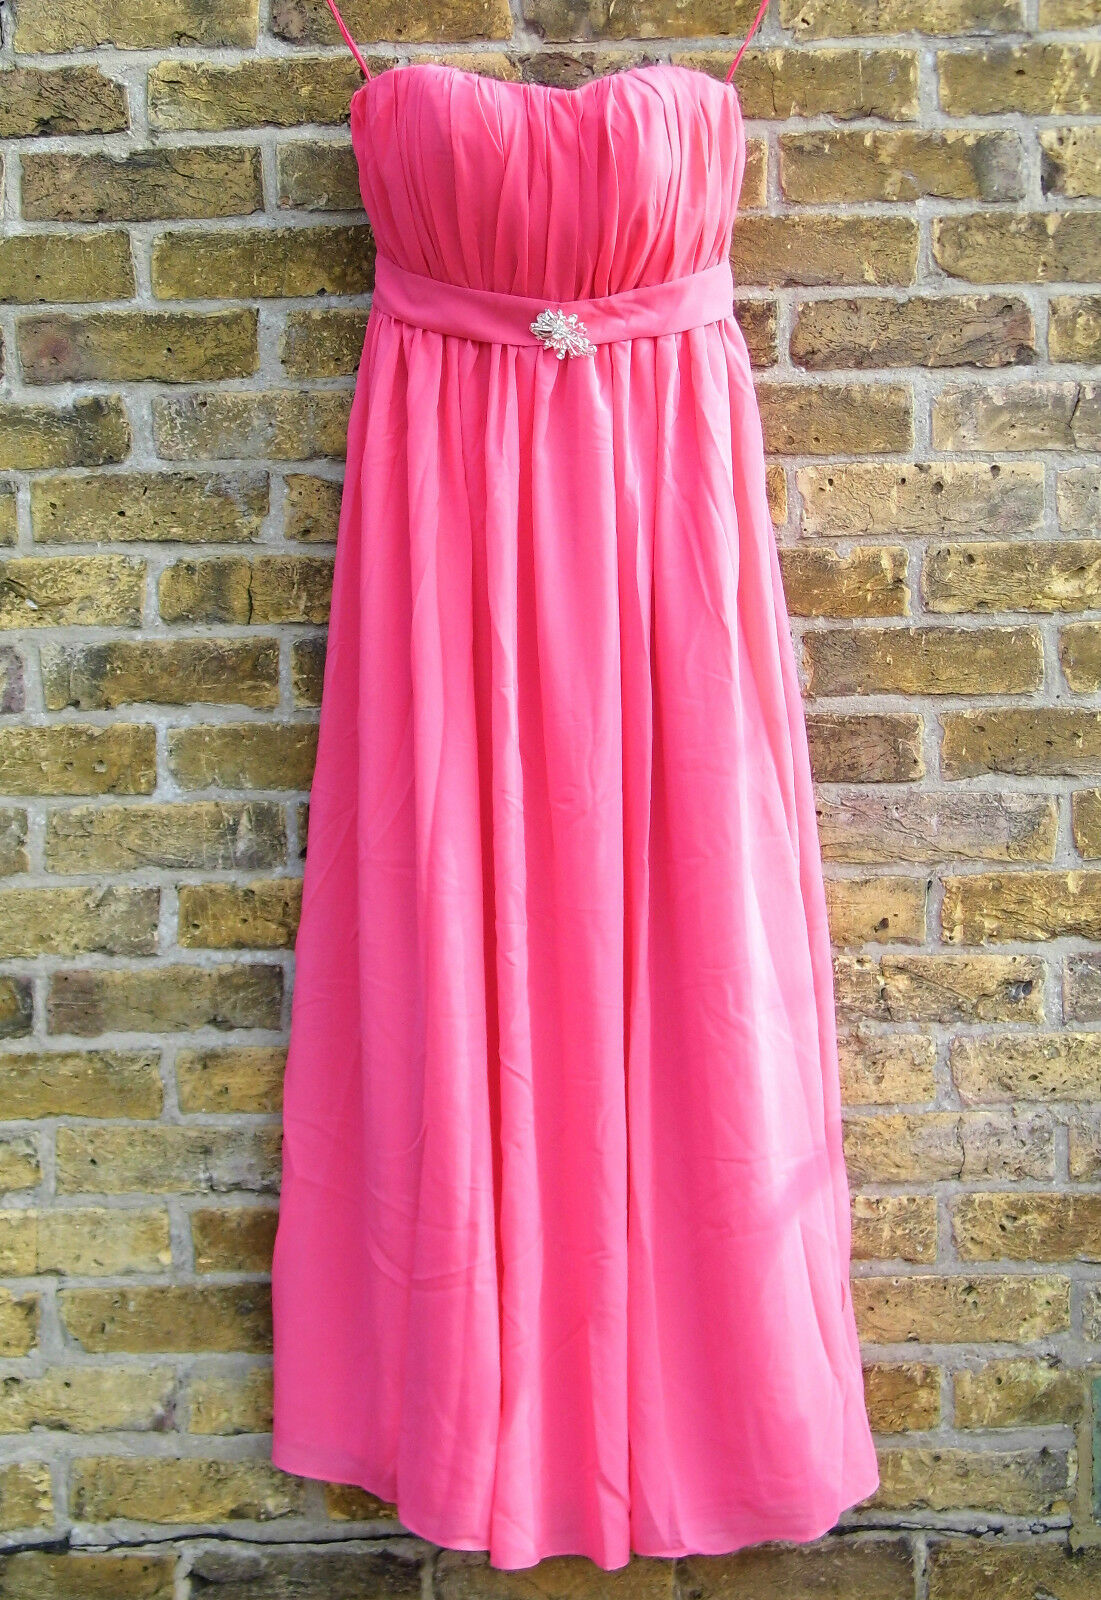 Evening Dress; Size 12 Strapless Empire Line Hot PInk Chiffon Gown